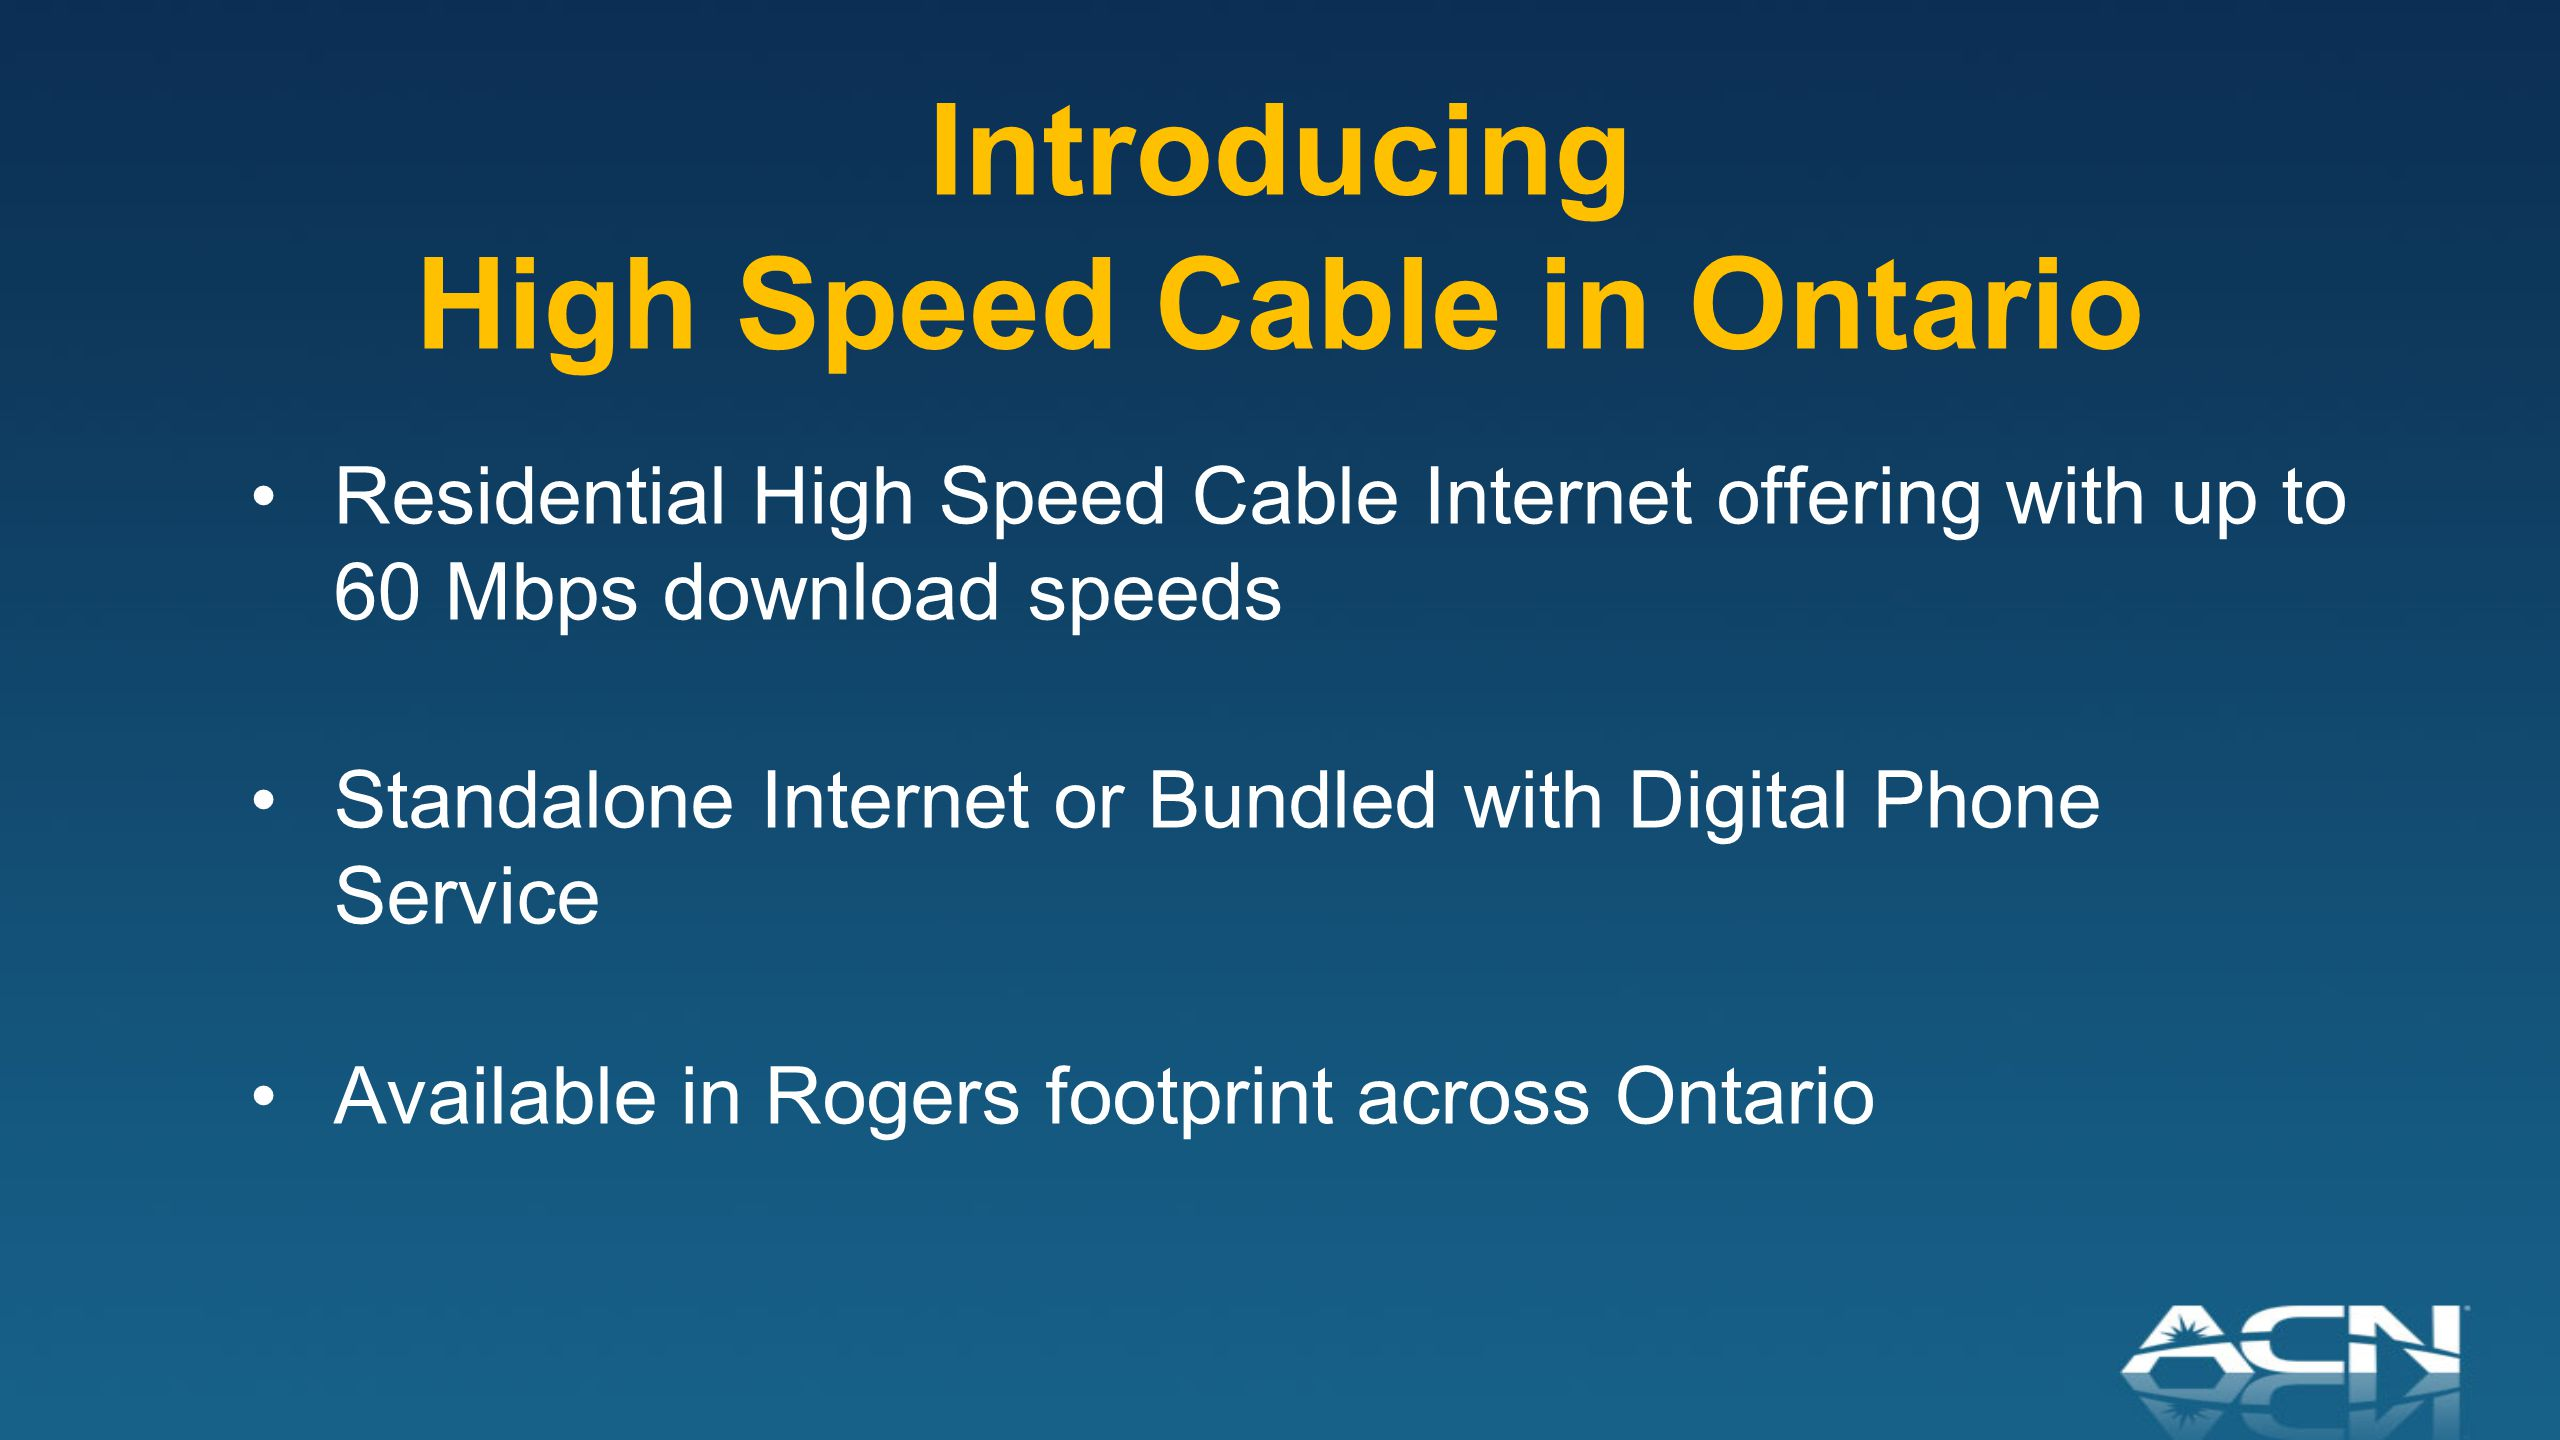 Introducing High Speed Cable in Ontario Residential High Speed Cable Internet offering with up to 60 Mbps download speeds Standalone Internet or Bundled with Digital Phone Service Available in Rogers footprint across Ontario